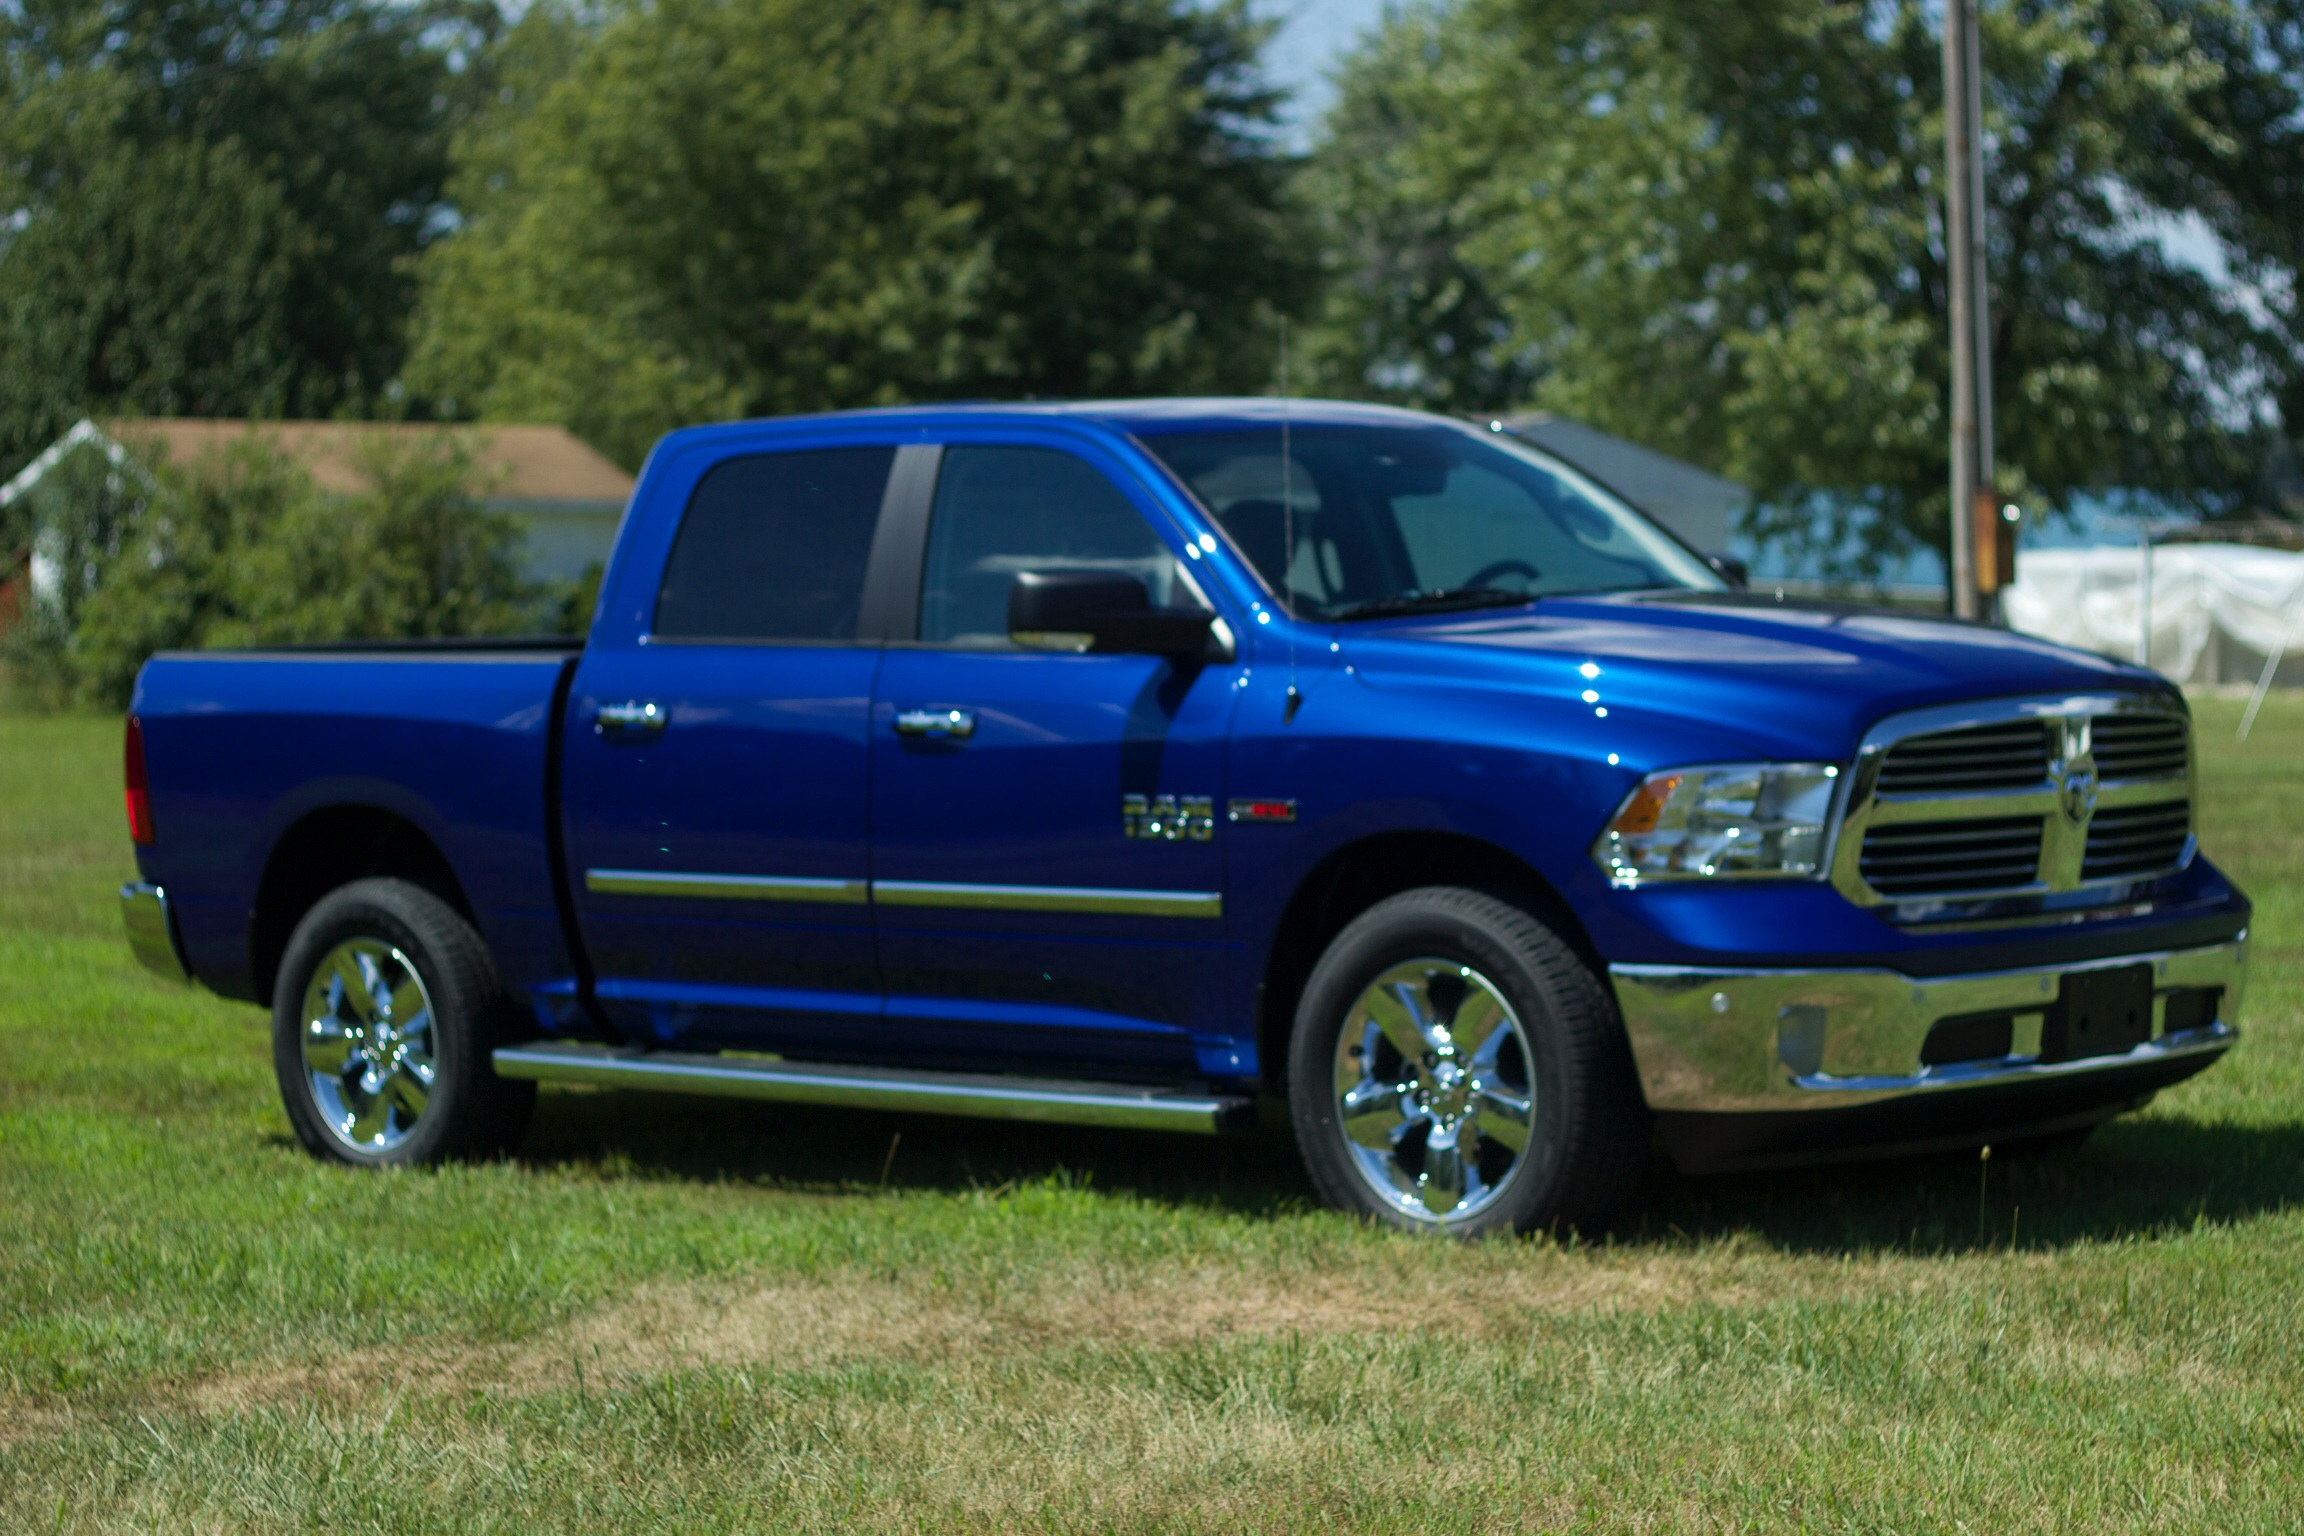 Dodge 1500 Ecodiesel For Sale In Denver | Autos Post